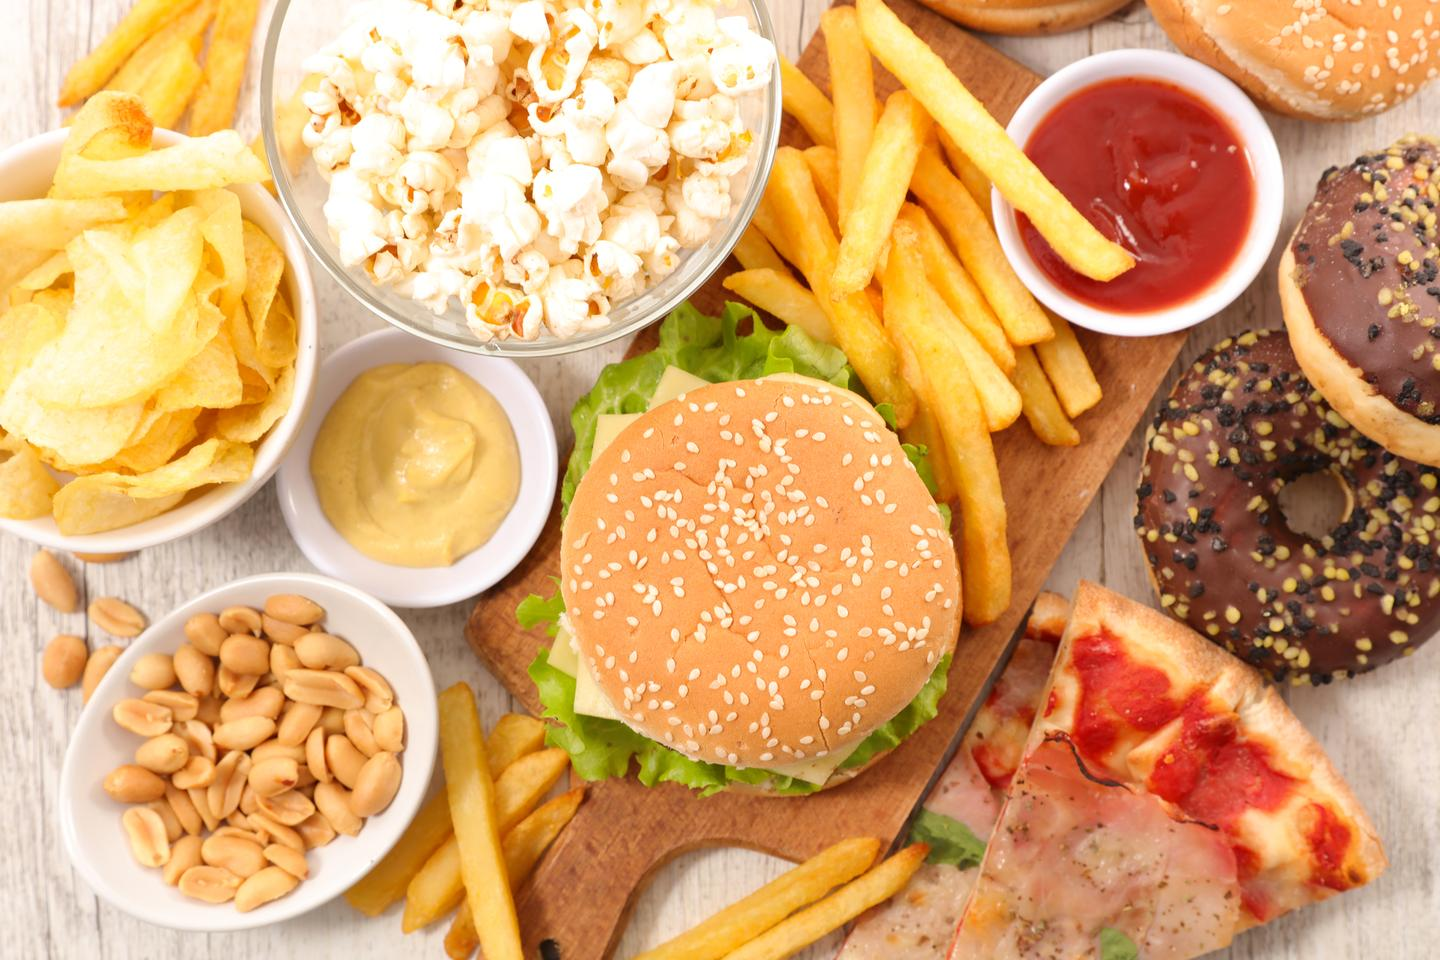 A new study is claimed to be one of the first exploring the lasting effects of a poor diet on the microbiome at an early age